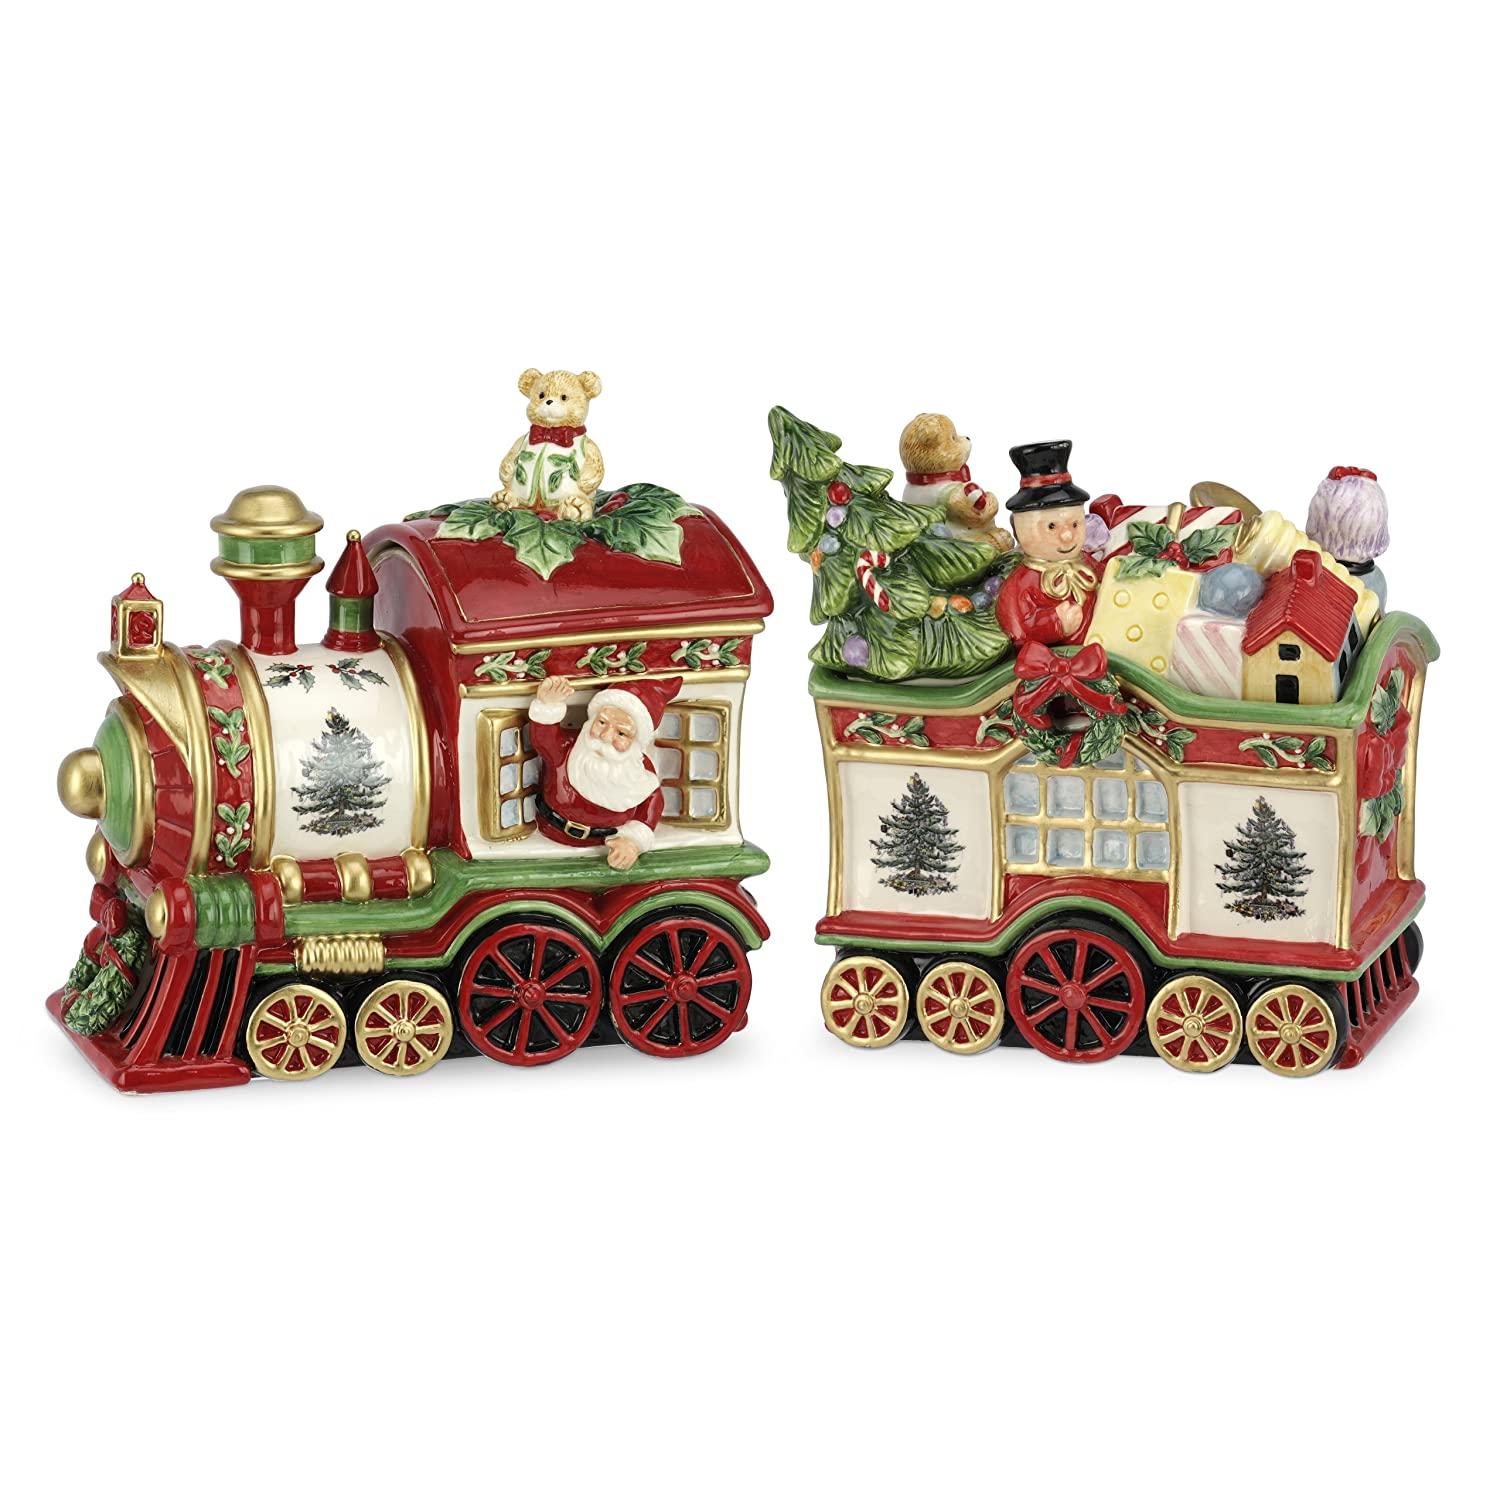 Spode Christmas Tree 2-Piece Train Set Covered Cookie Jar, 9.5-Inch/8.75-Inch